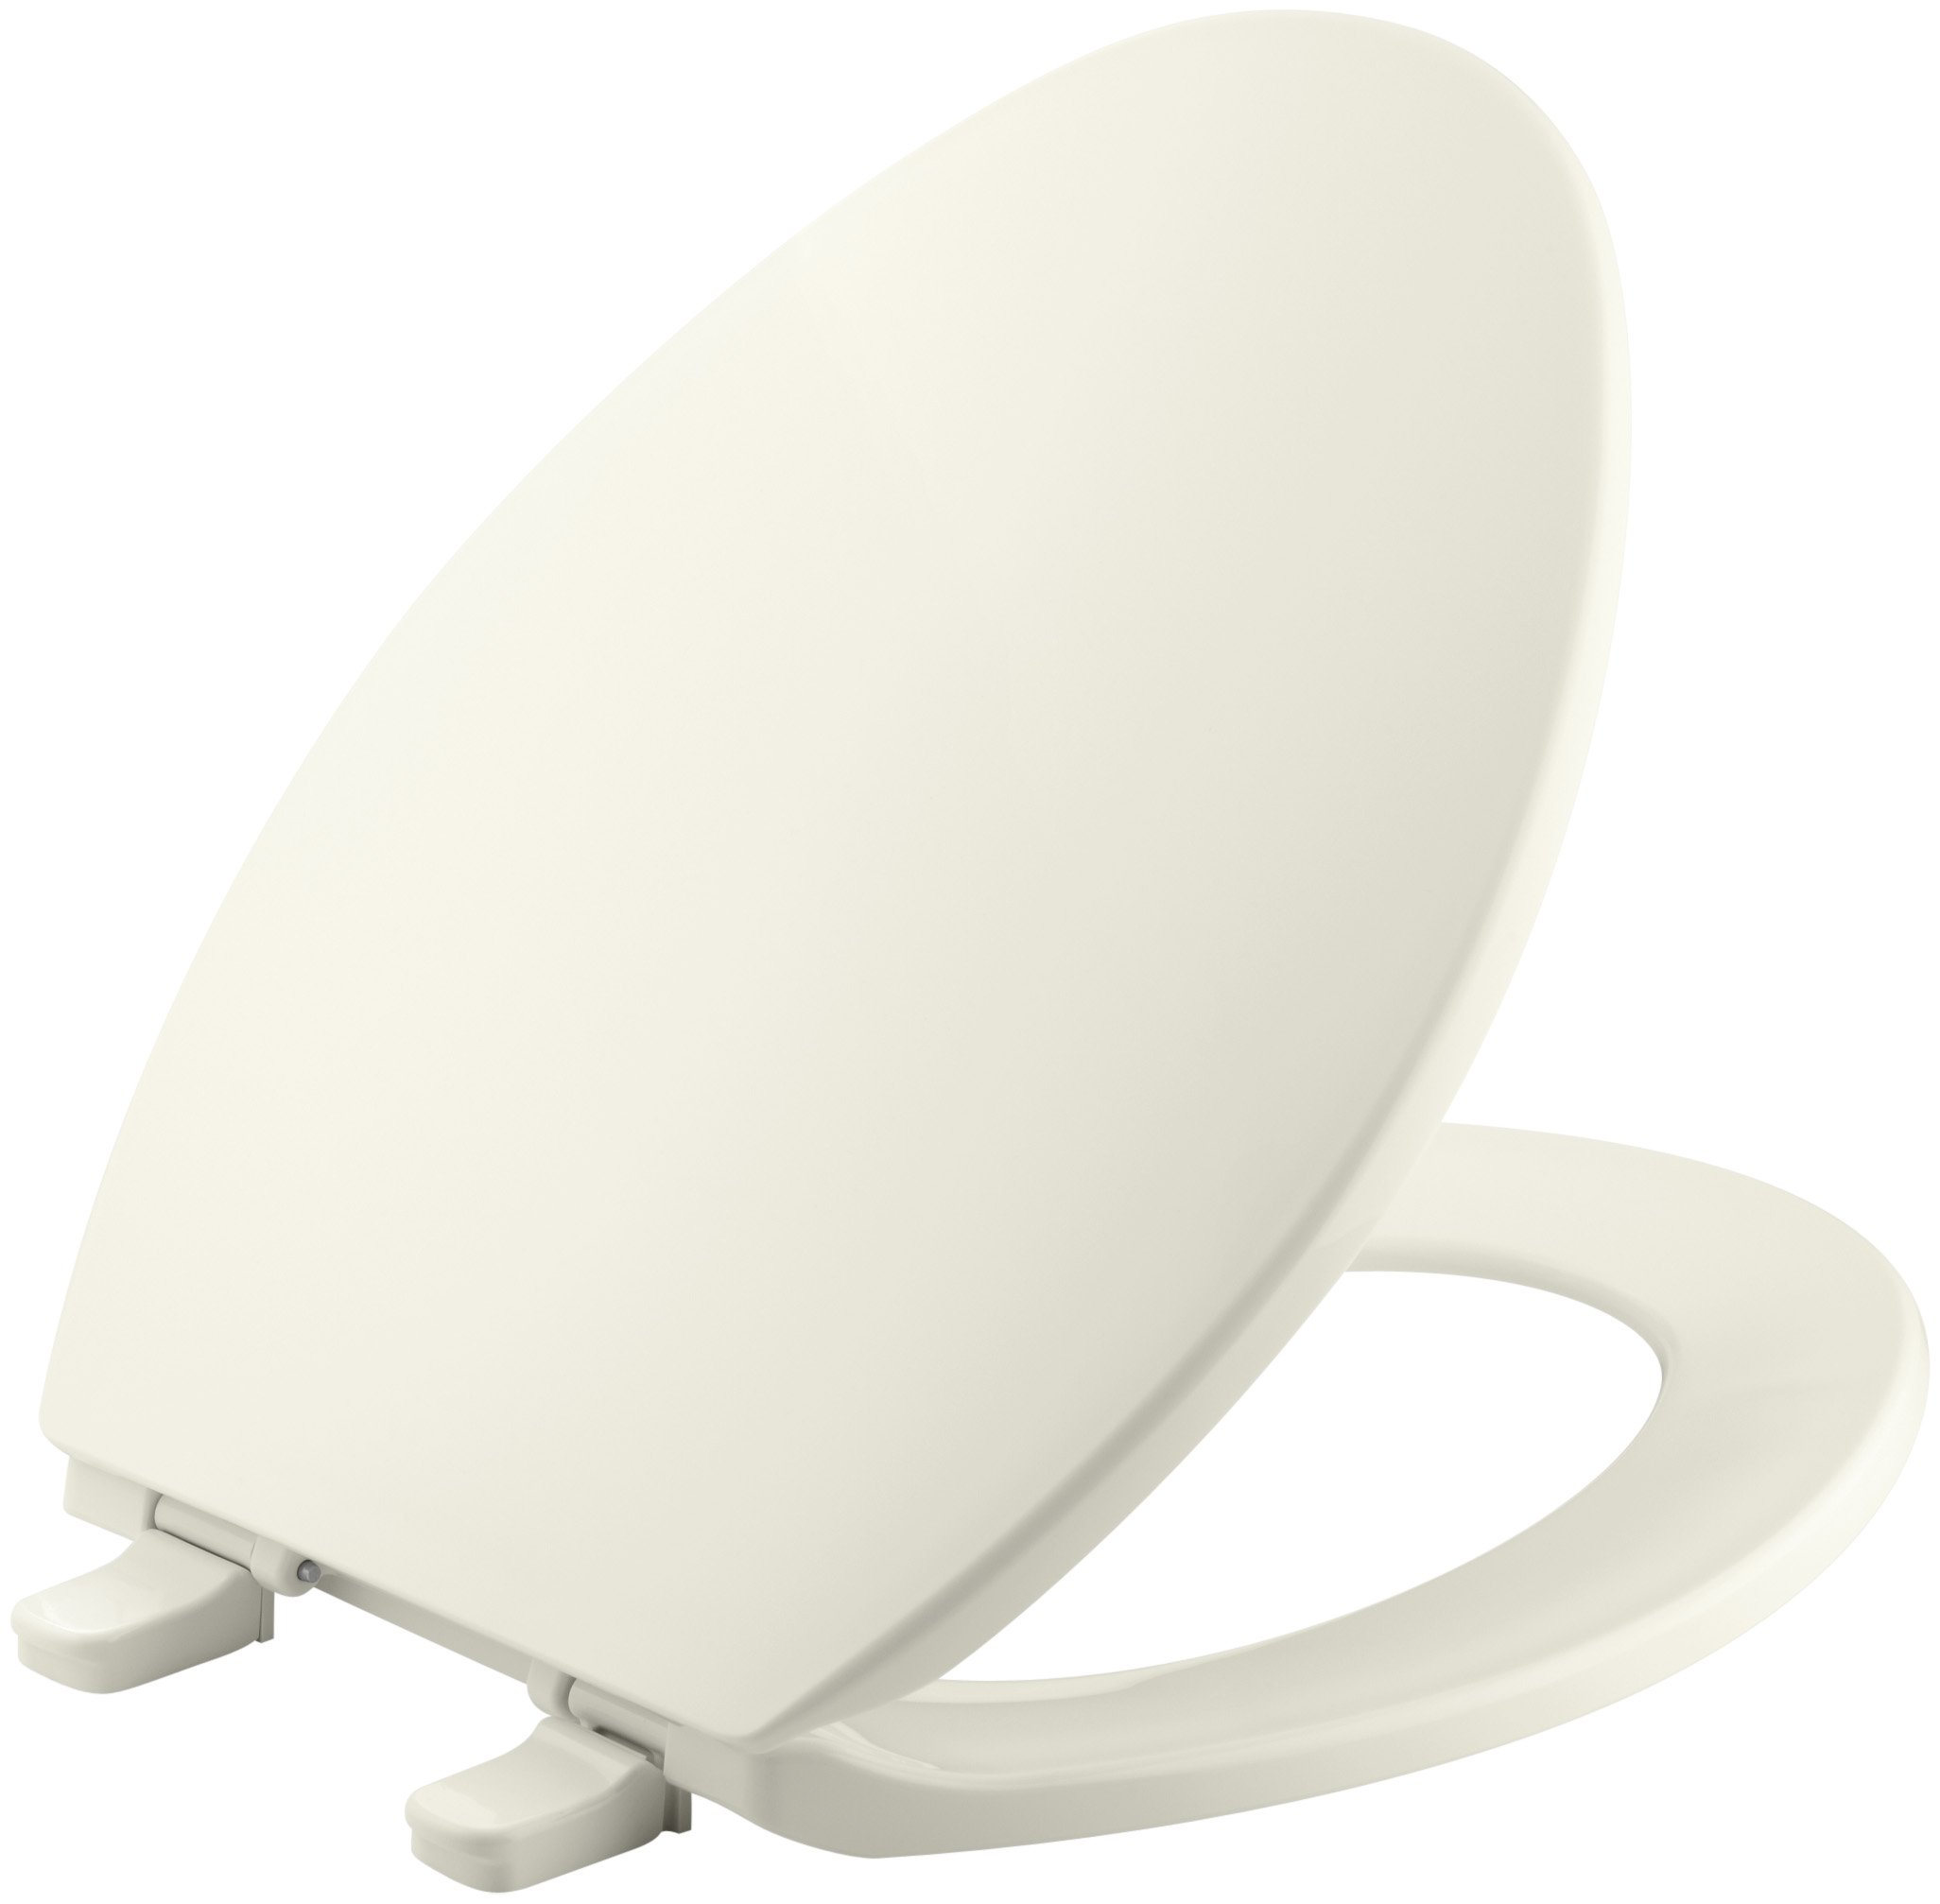 KOHLER K-4774-96 Brevia Elongated Toilet Seat with Quick-Release Hinges and Quick-Attach Hardware for Easy Clean in Biscuit by Kohler